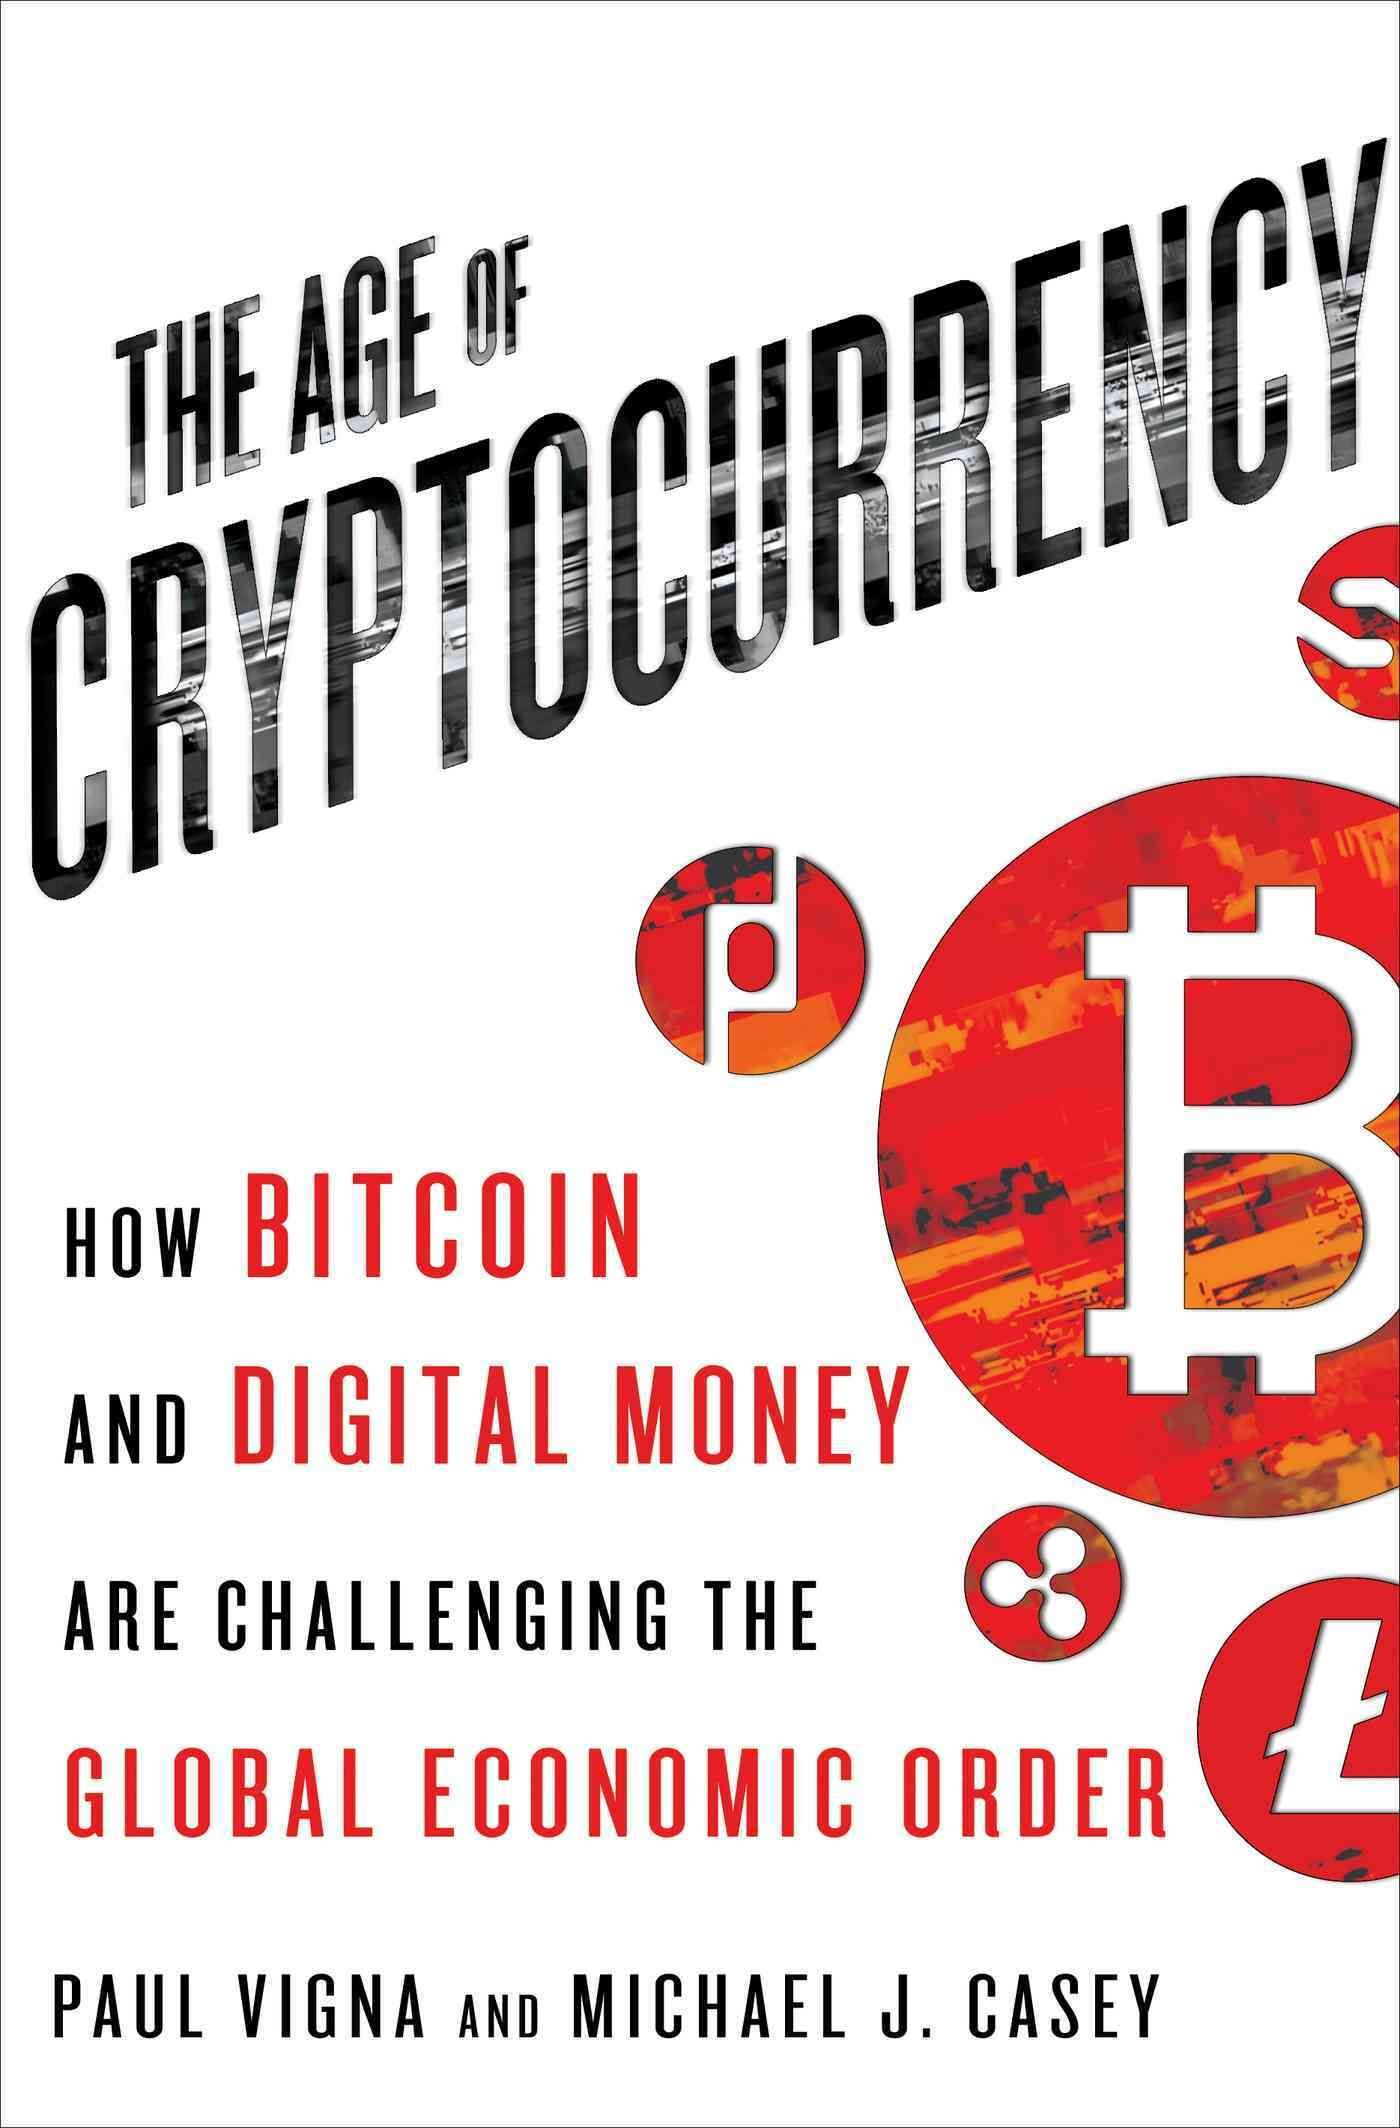 The Age Of Cryptocurrency How Bitcoin And Digital Money Are Challenging Global Economic Order